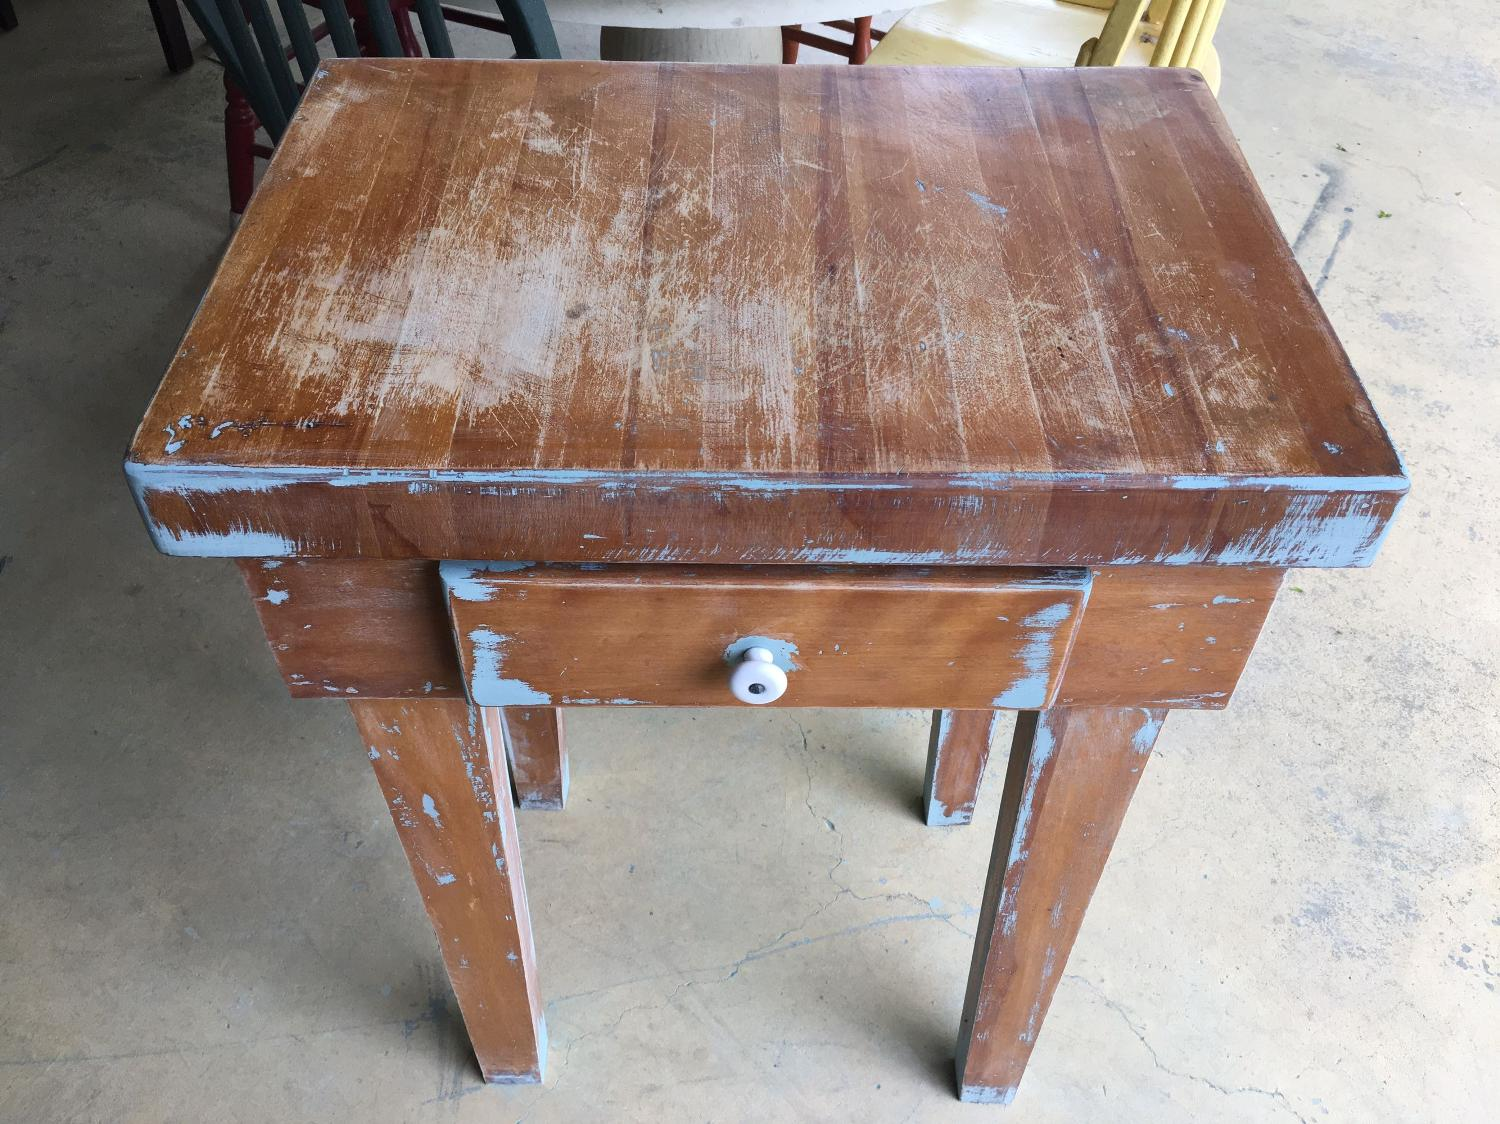 Buy Butcher Block Table Top: Find More Rustic Butcher Block Table Cross Posted Ppu